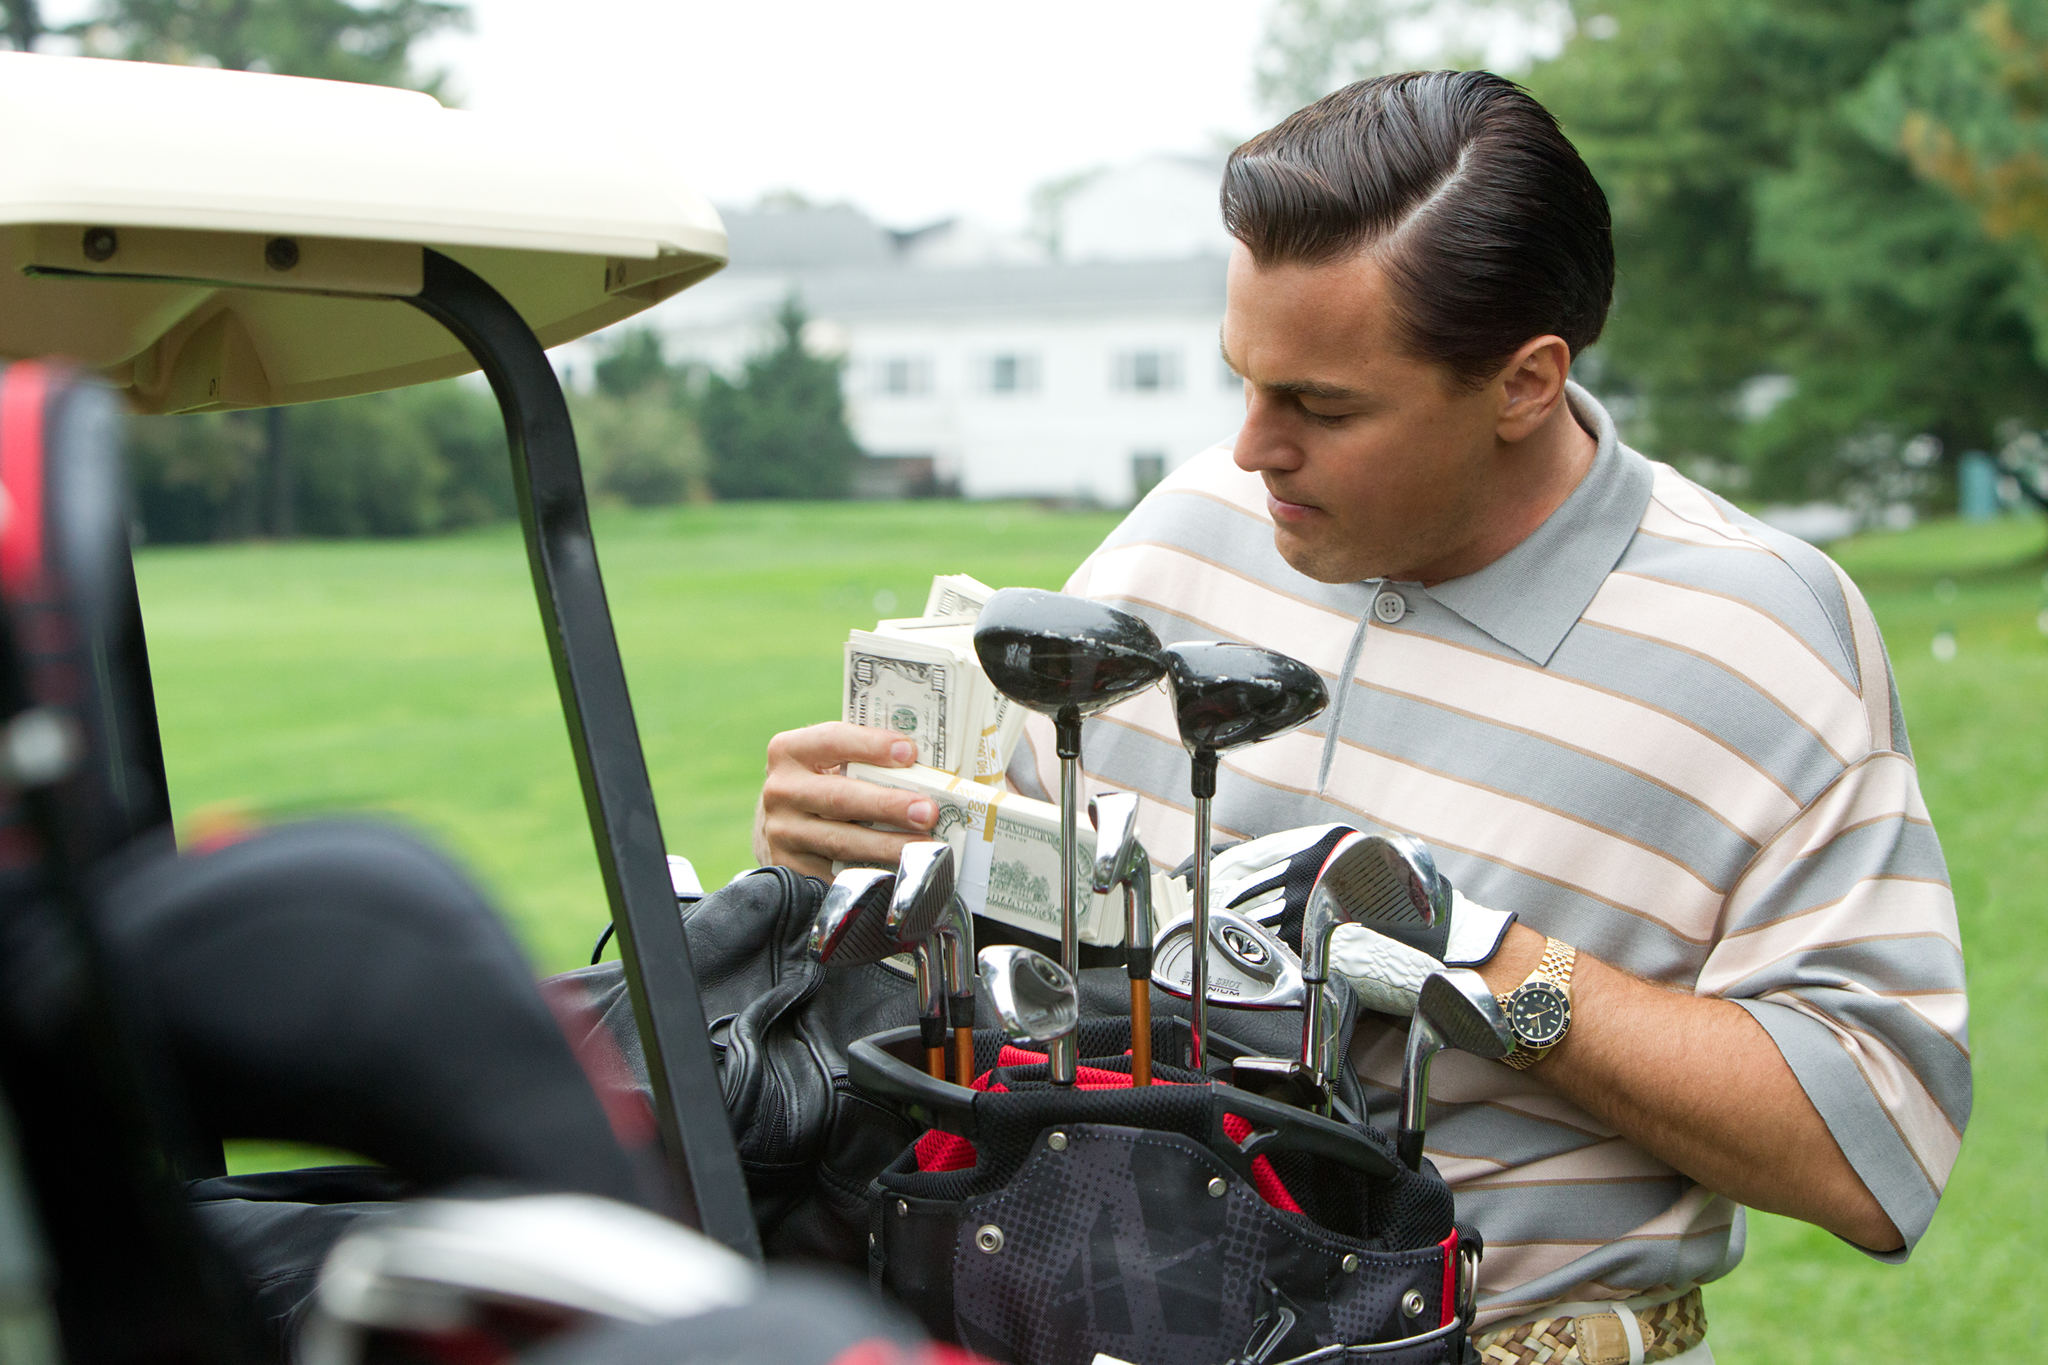 Leonardo DiCaprio in The Wolf of Wall Street (2013)